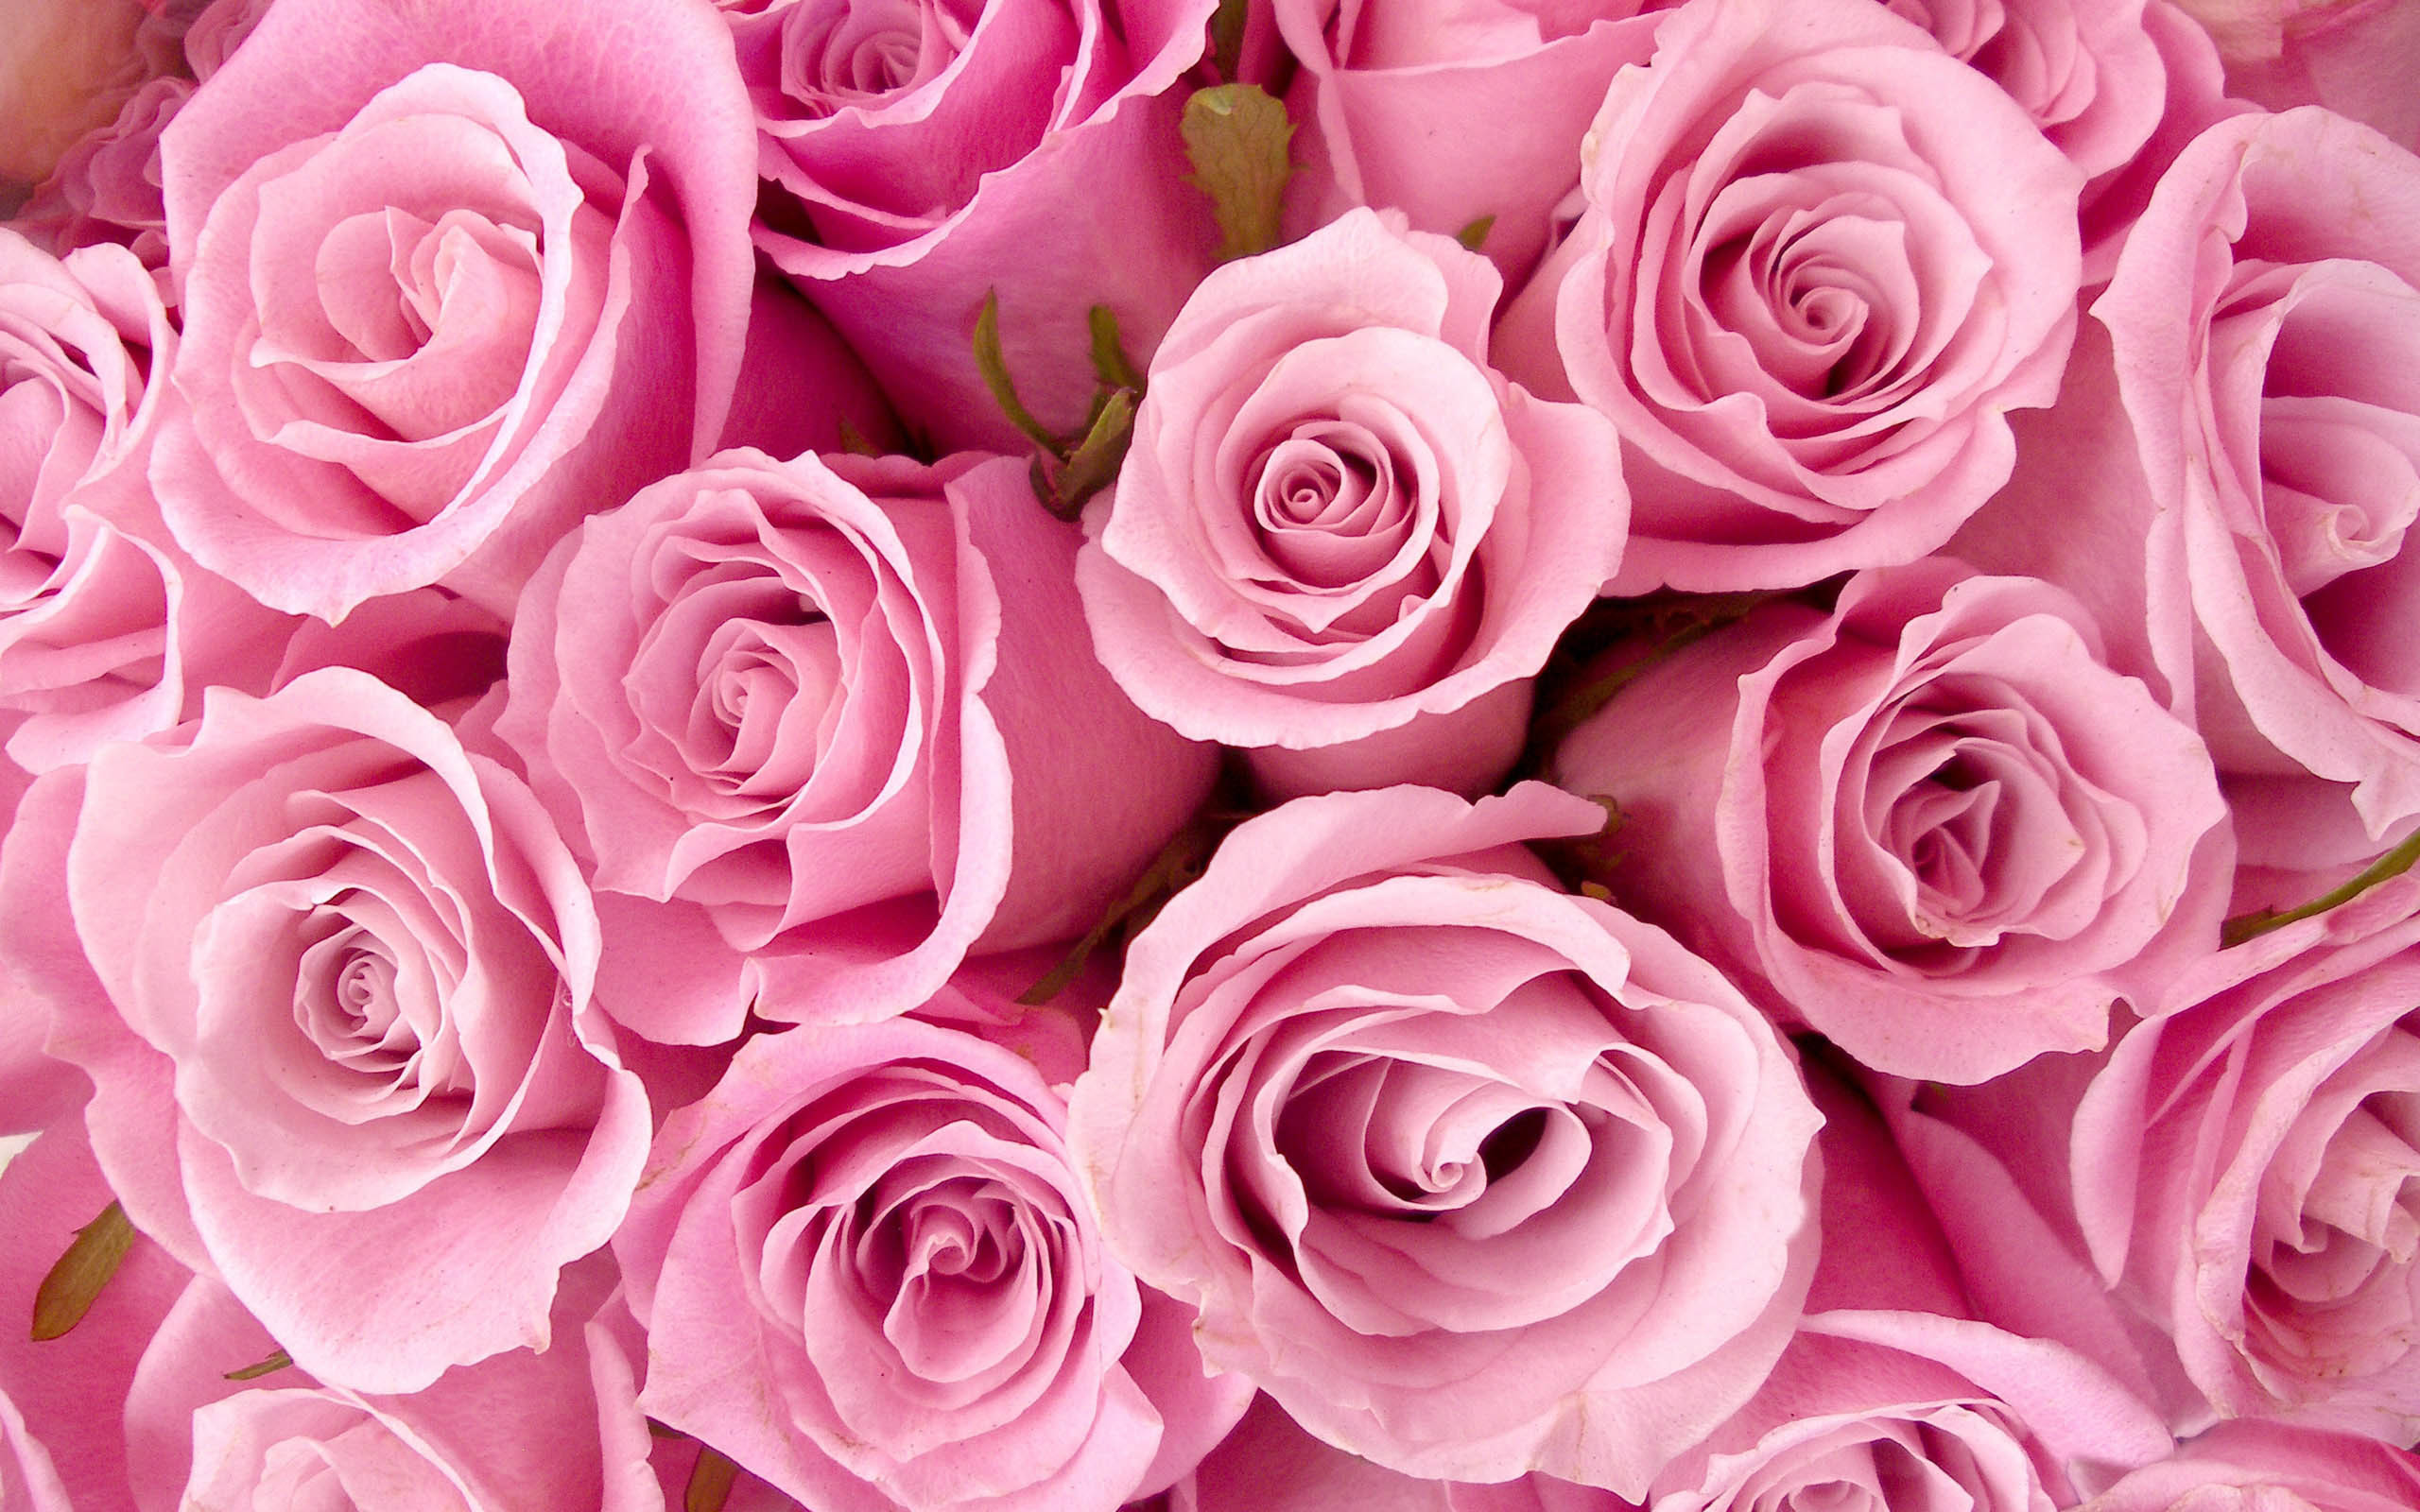 2560x1600 Hd 3d Rose Wallpaper Pictures Download Desktop Wallpapers Windows Smart Phone Background Photos